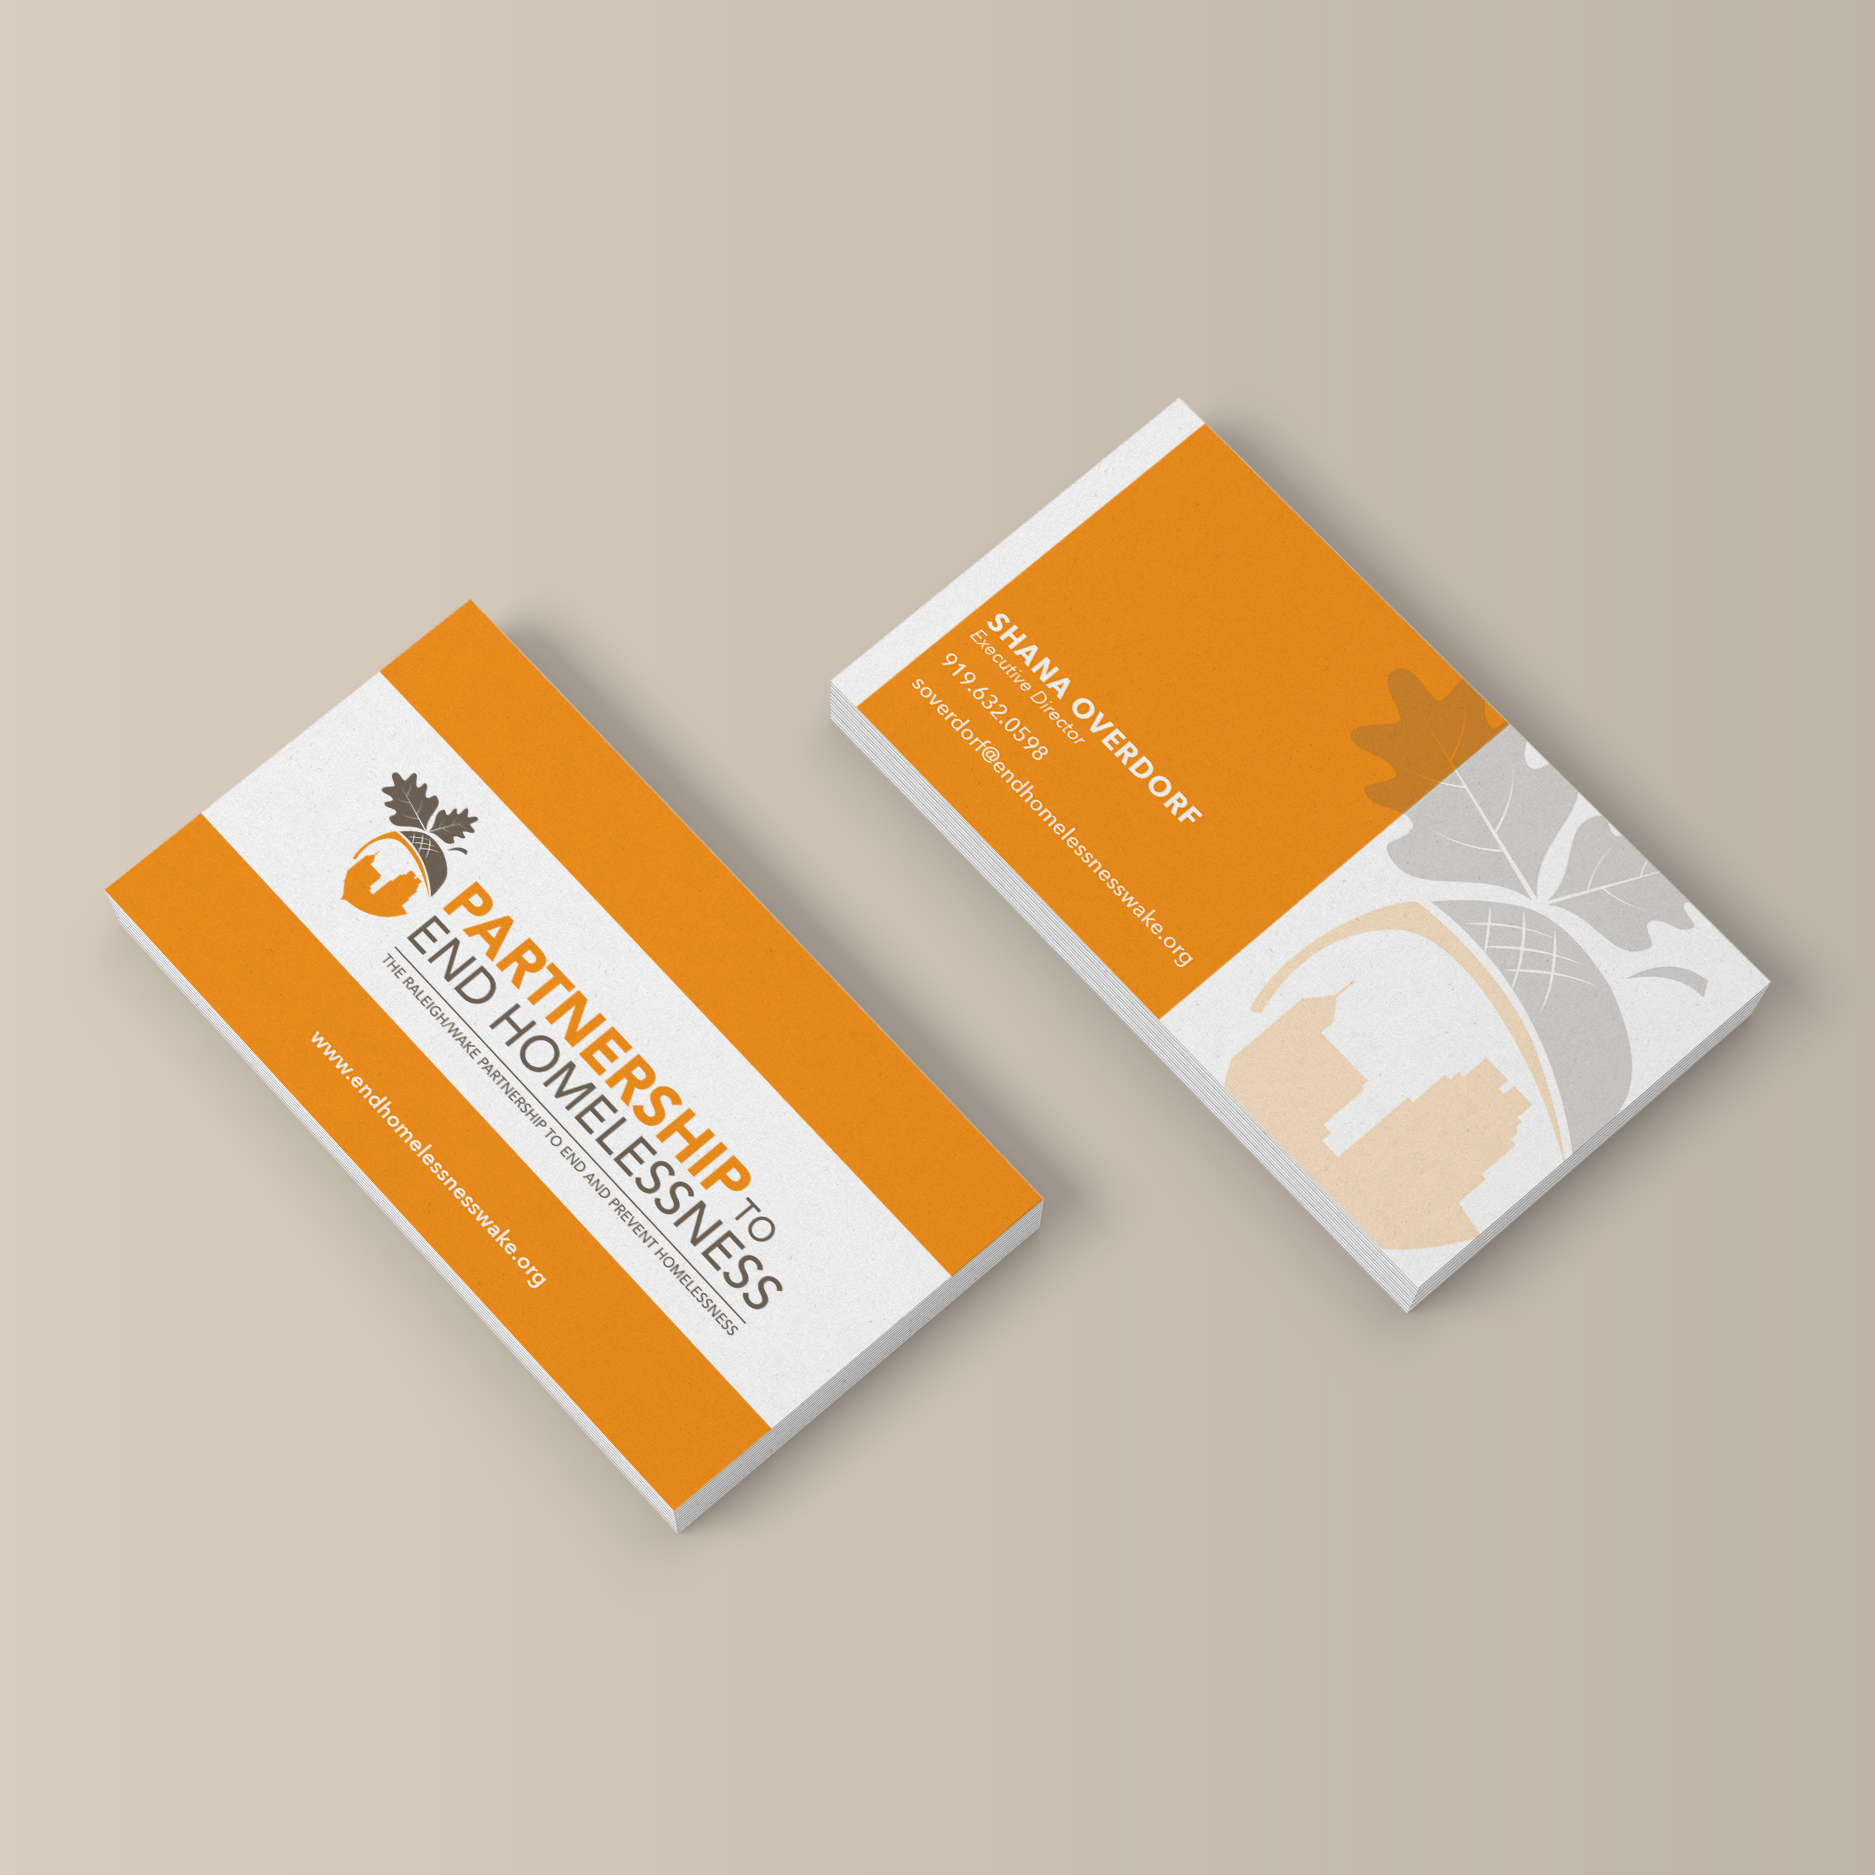 rwpeph logo design on business cards